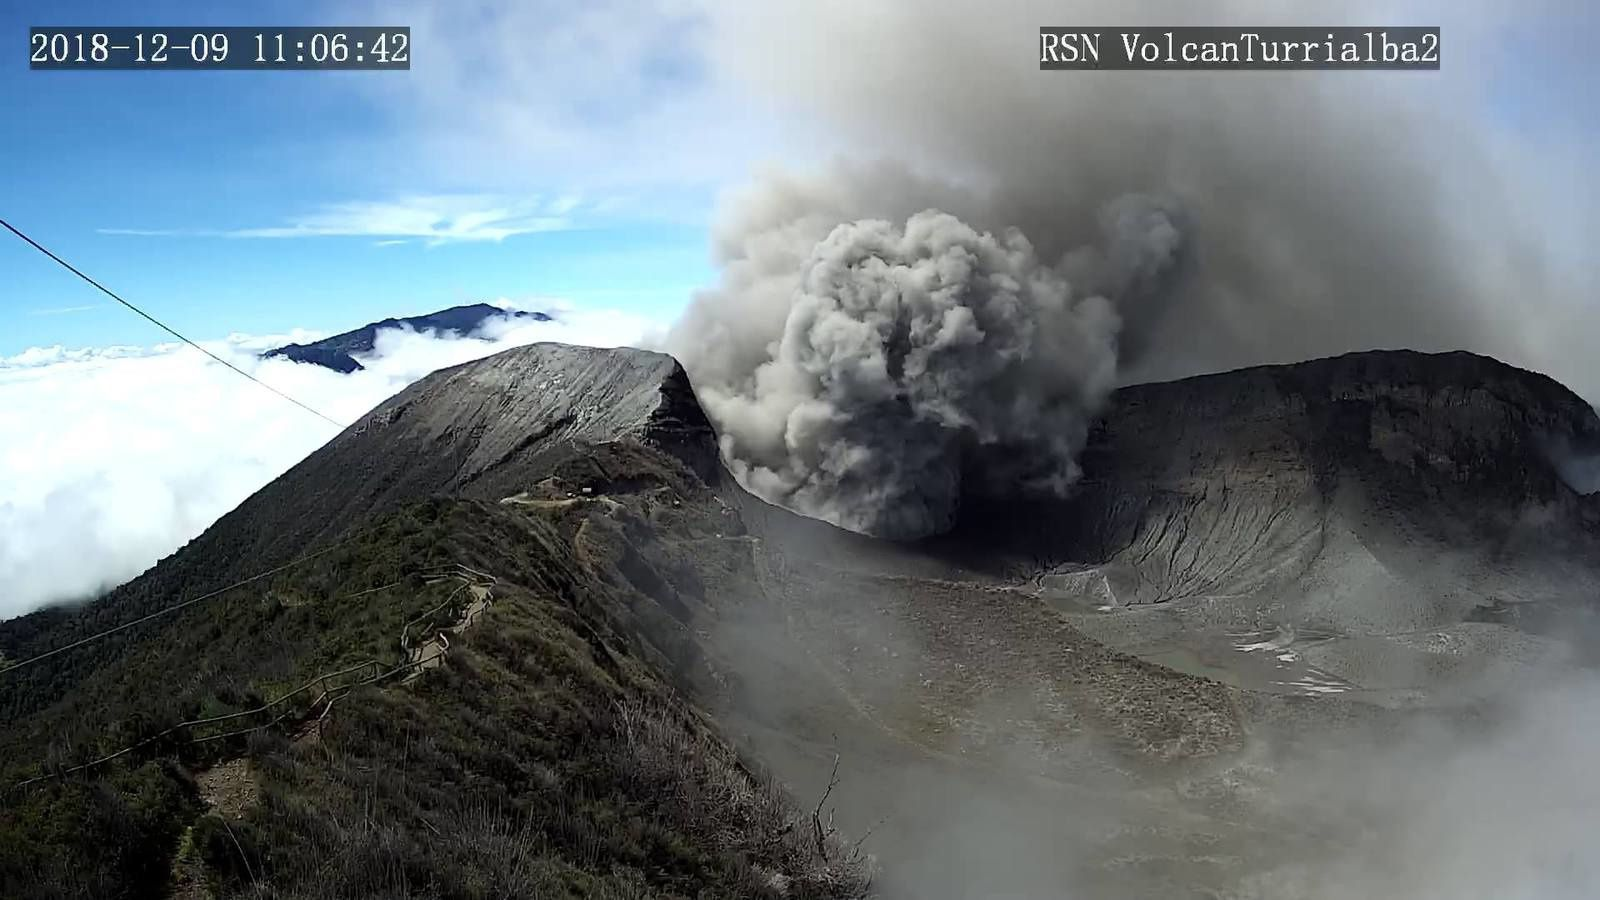 Turrialba - 09.12.2018 - RSN webcam